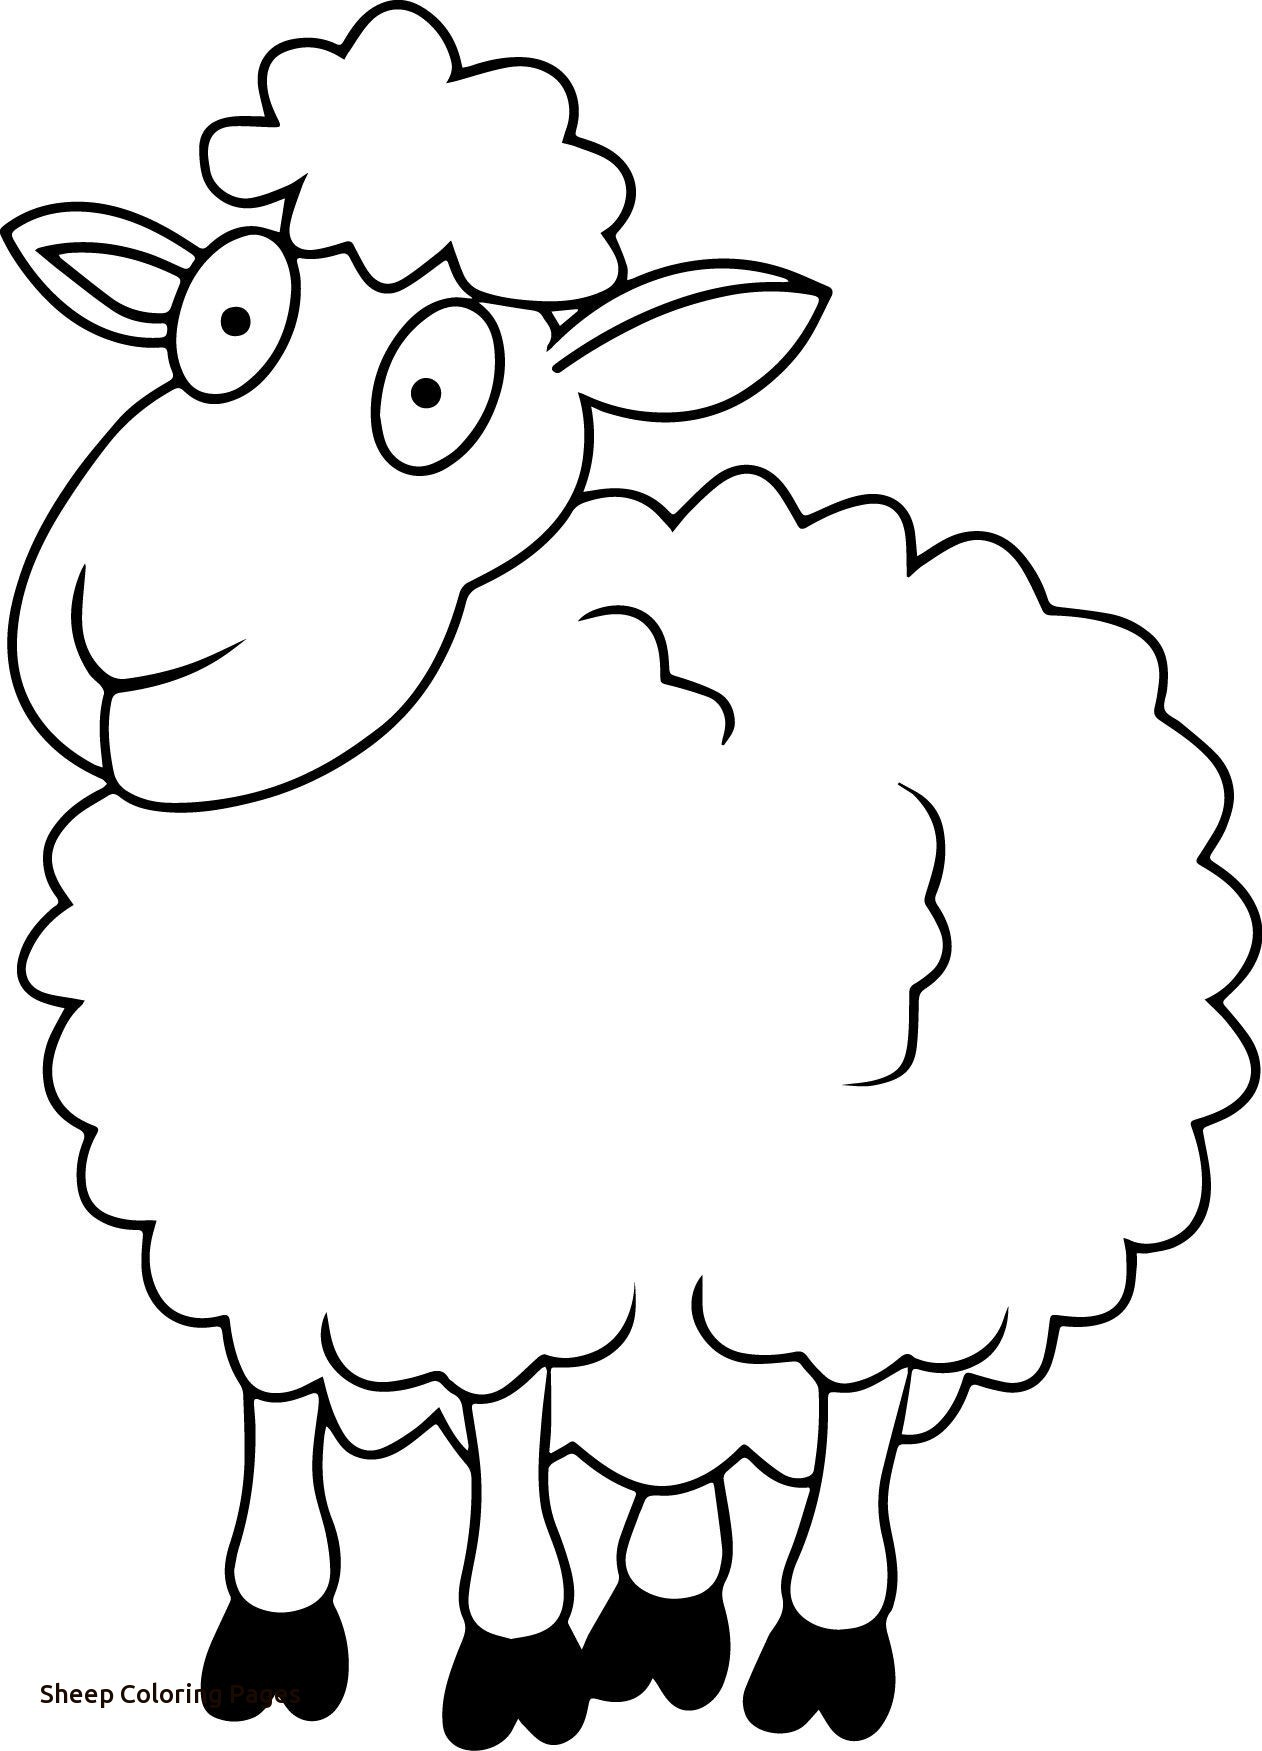 photograph relating to Sheep Printable named Shaun the sheep by way of kite coloring internet pages for young children Luxurious